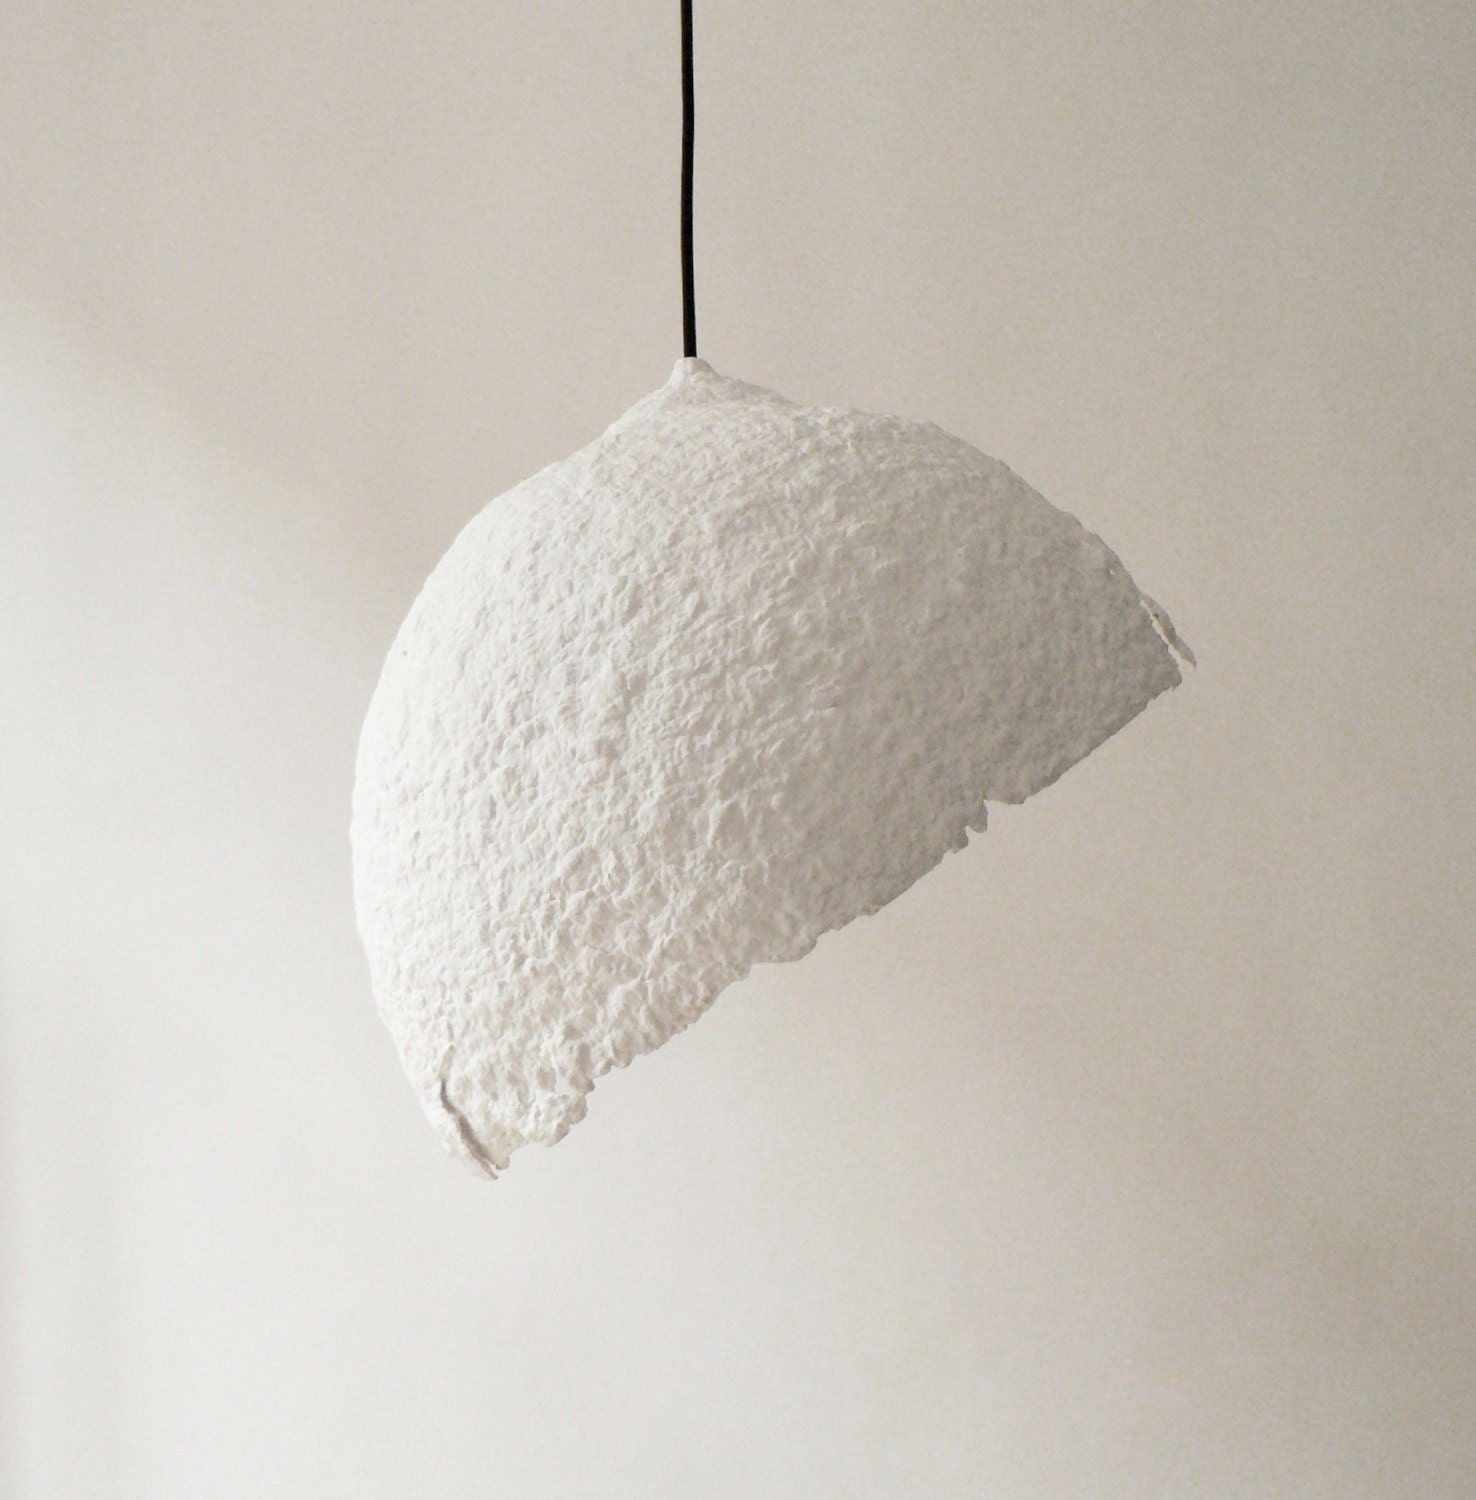 paper globe pendant hallway lighting. 🔎zoom Paper Globe Pendant Hallway Lighting